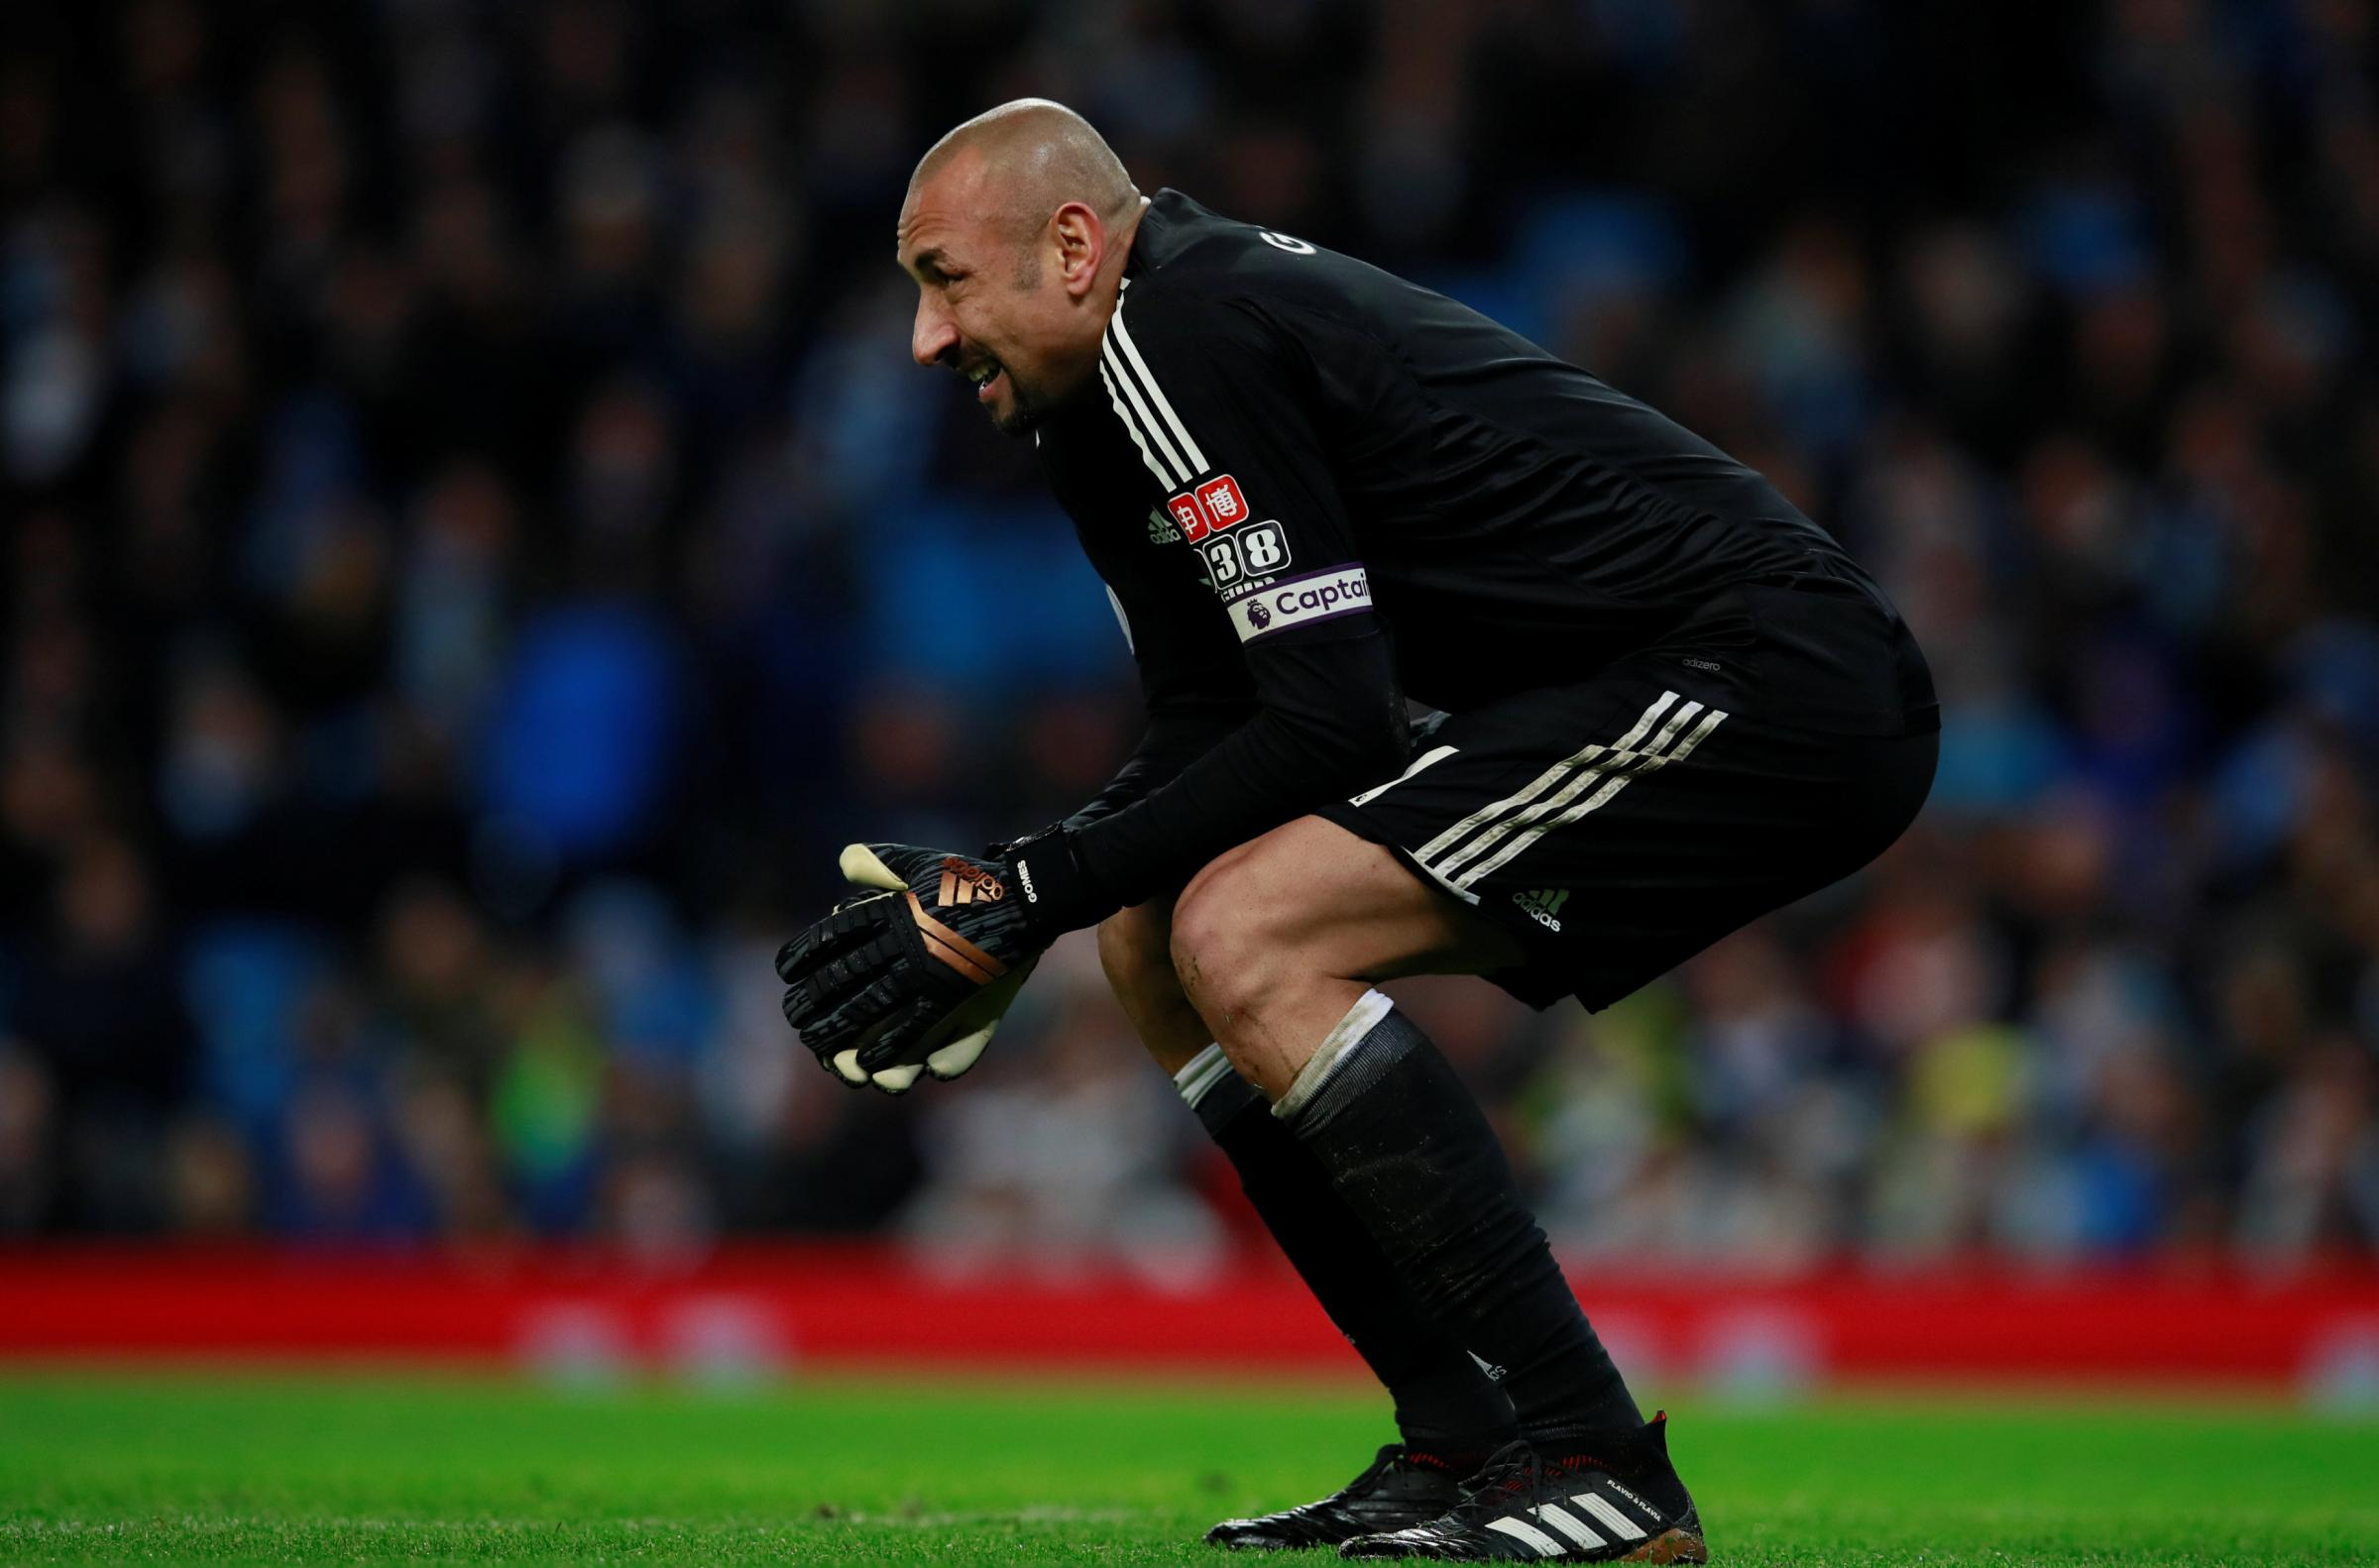 Gomes to give up goalkeeping for God